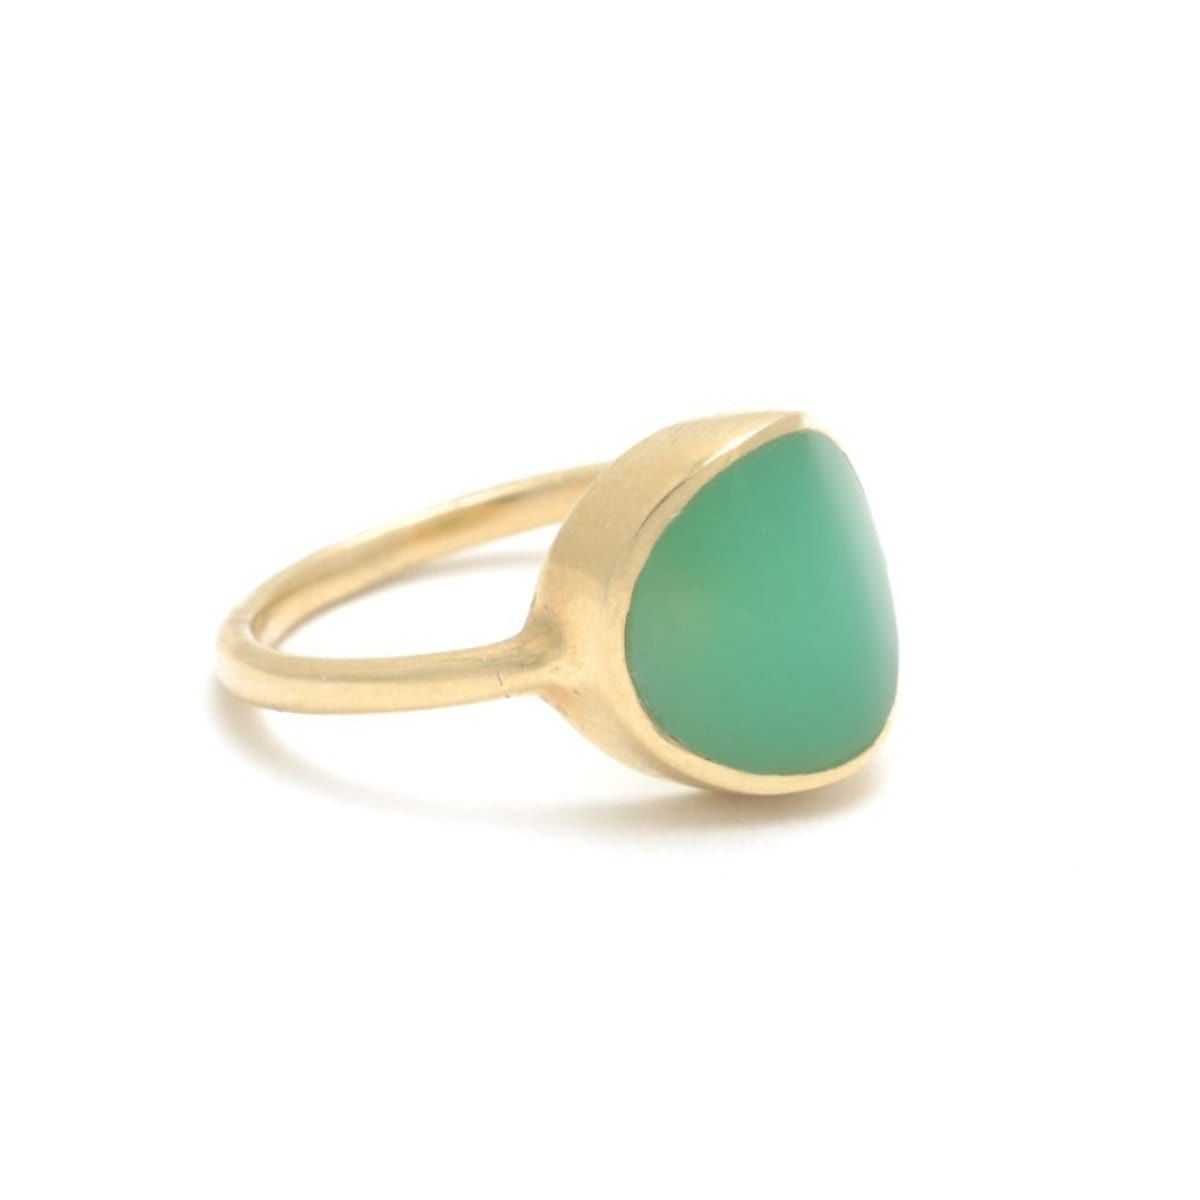 Chrysoprase Signet Ring